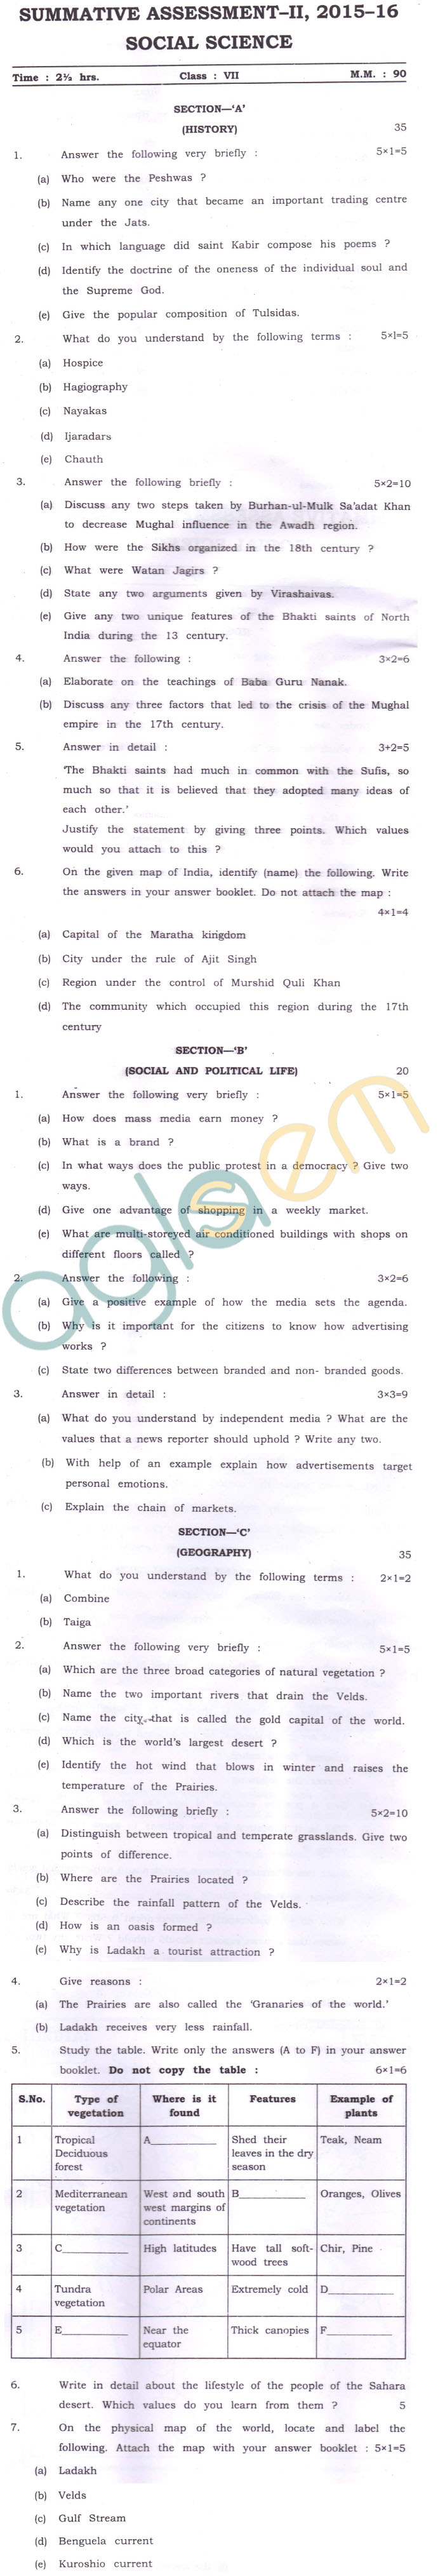 CBSE Class 7 SA 2 Question Paper for Social Science